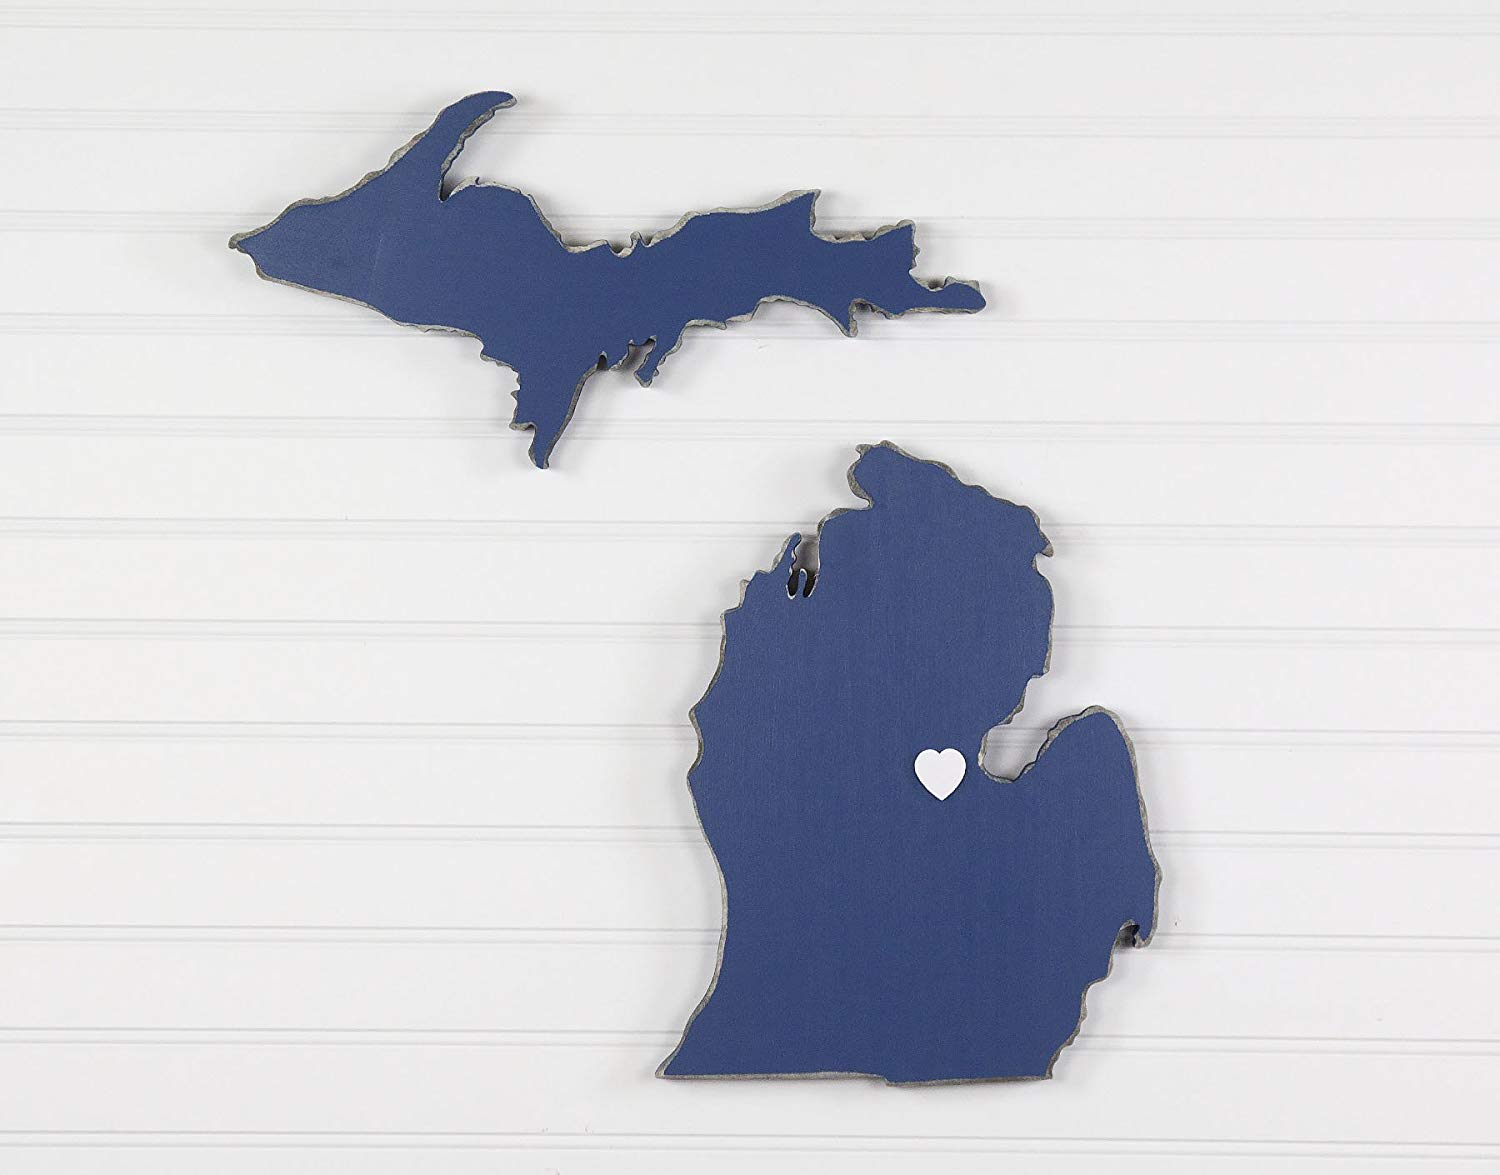 "Michigan State Shape Wood Cutout Sign Wall Art. 18"" Tall. 20 Paint Colors. Personalized with Choice of Wooden Dimensional Heart or Star at Hometown Location."